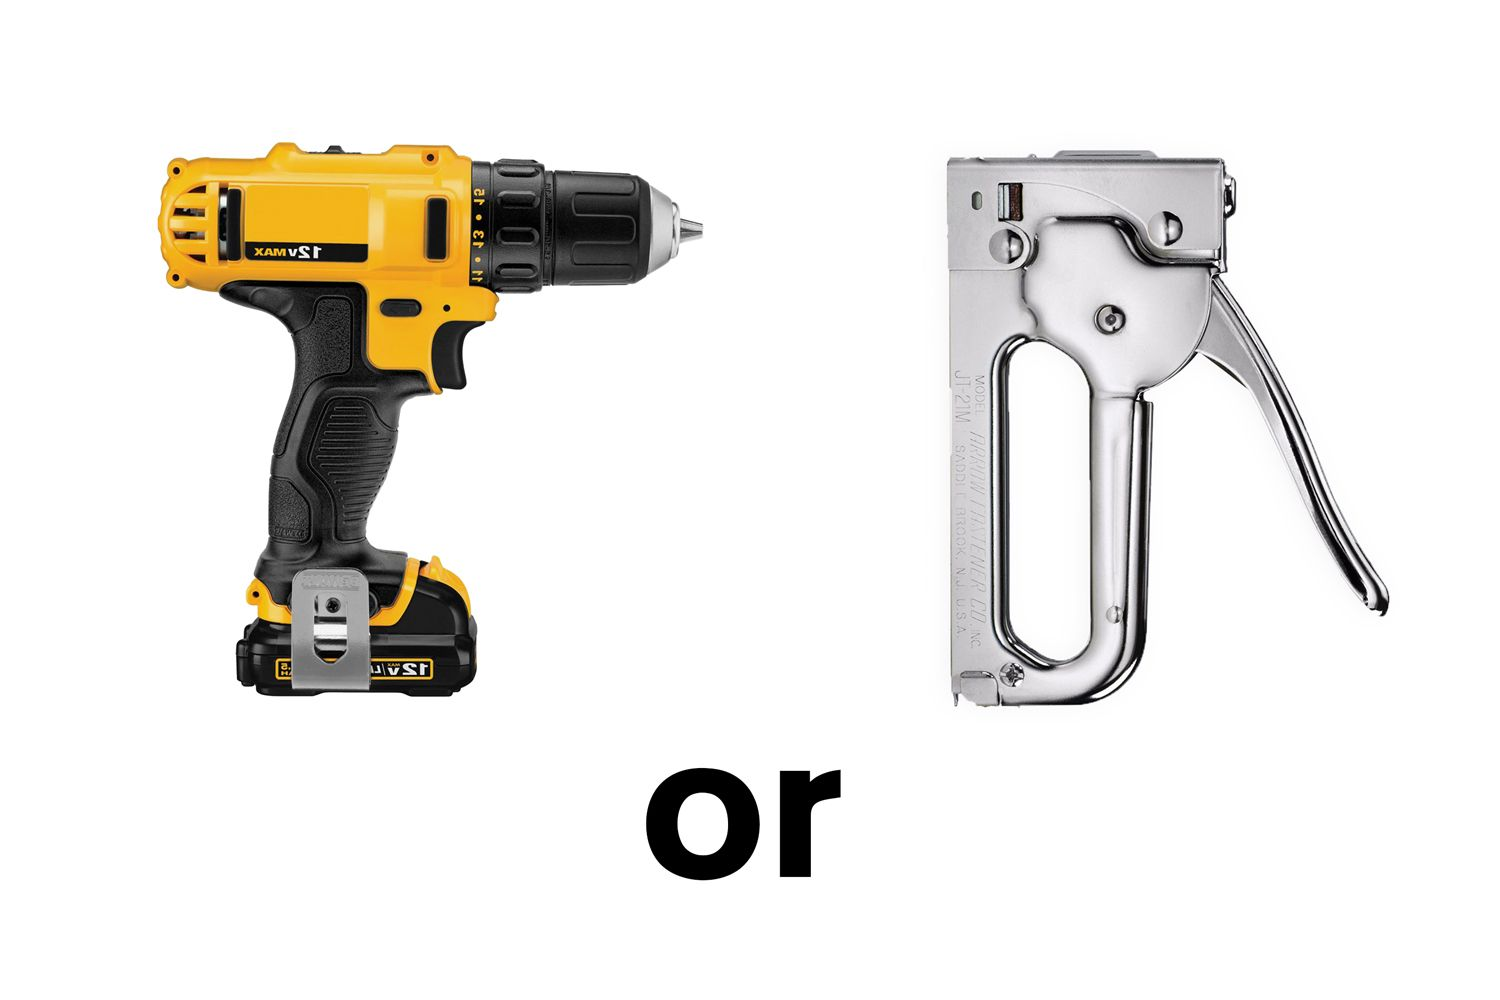 An image showing a power drill and a metal hand stapler